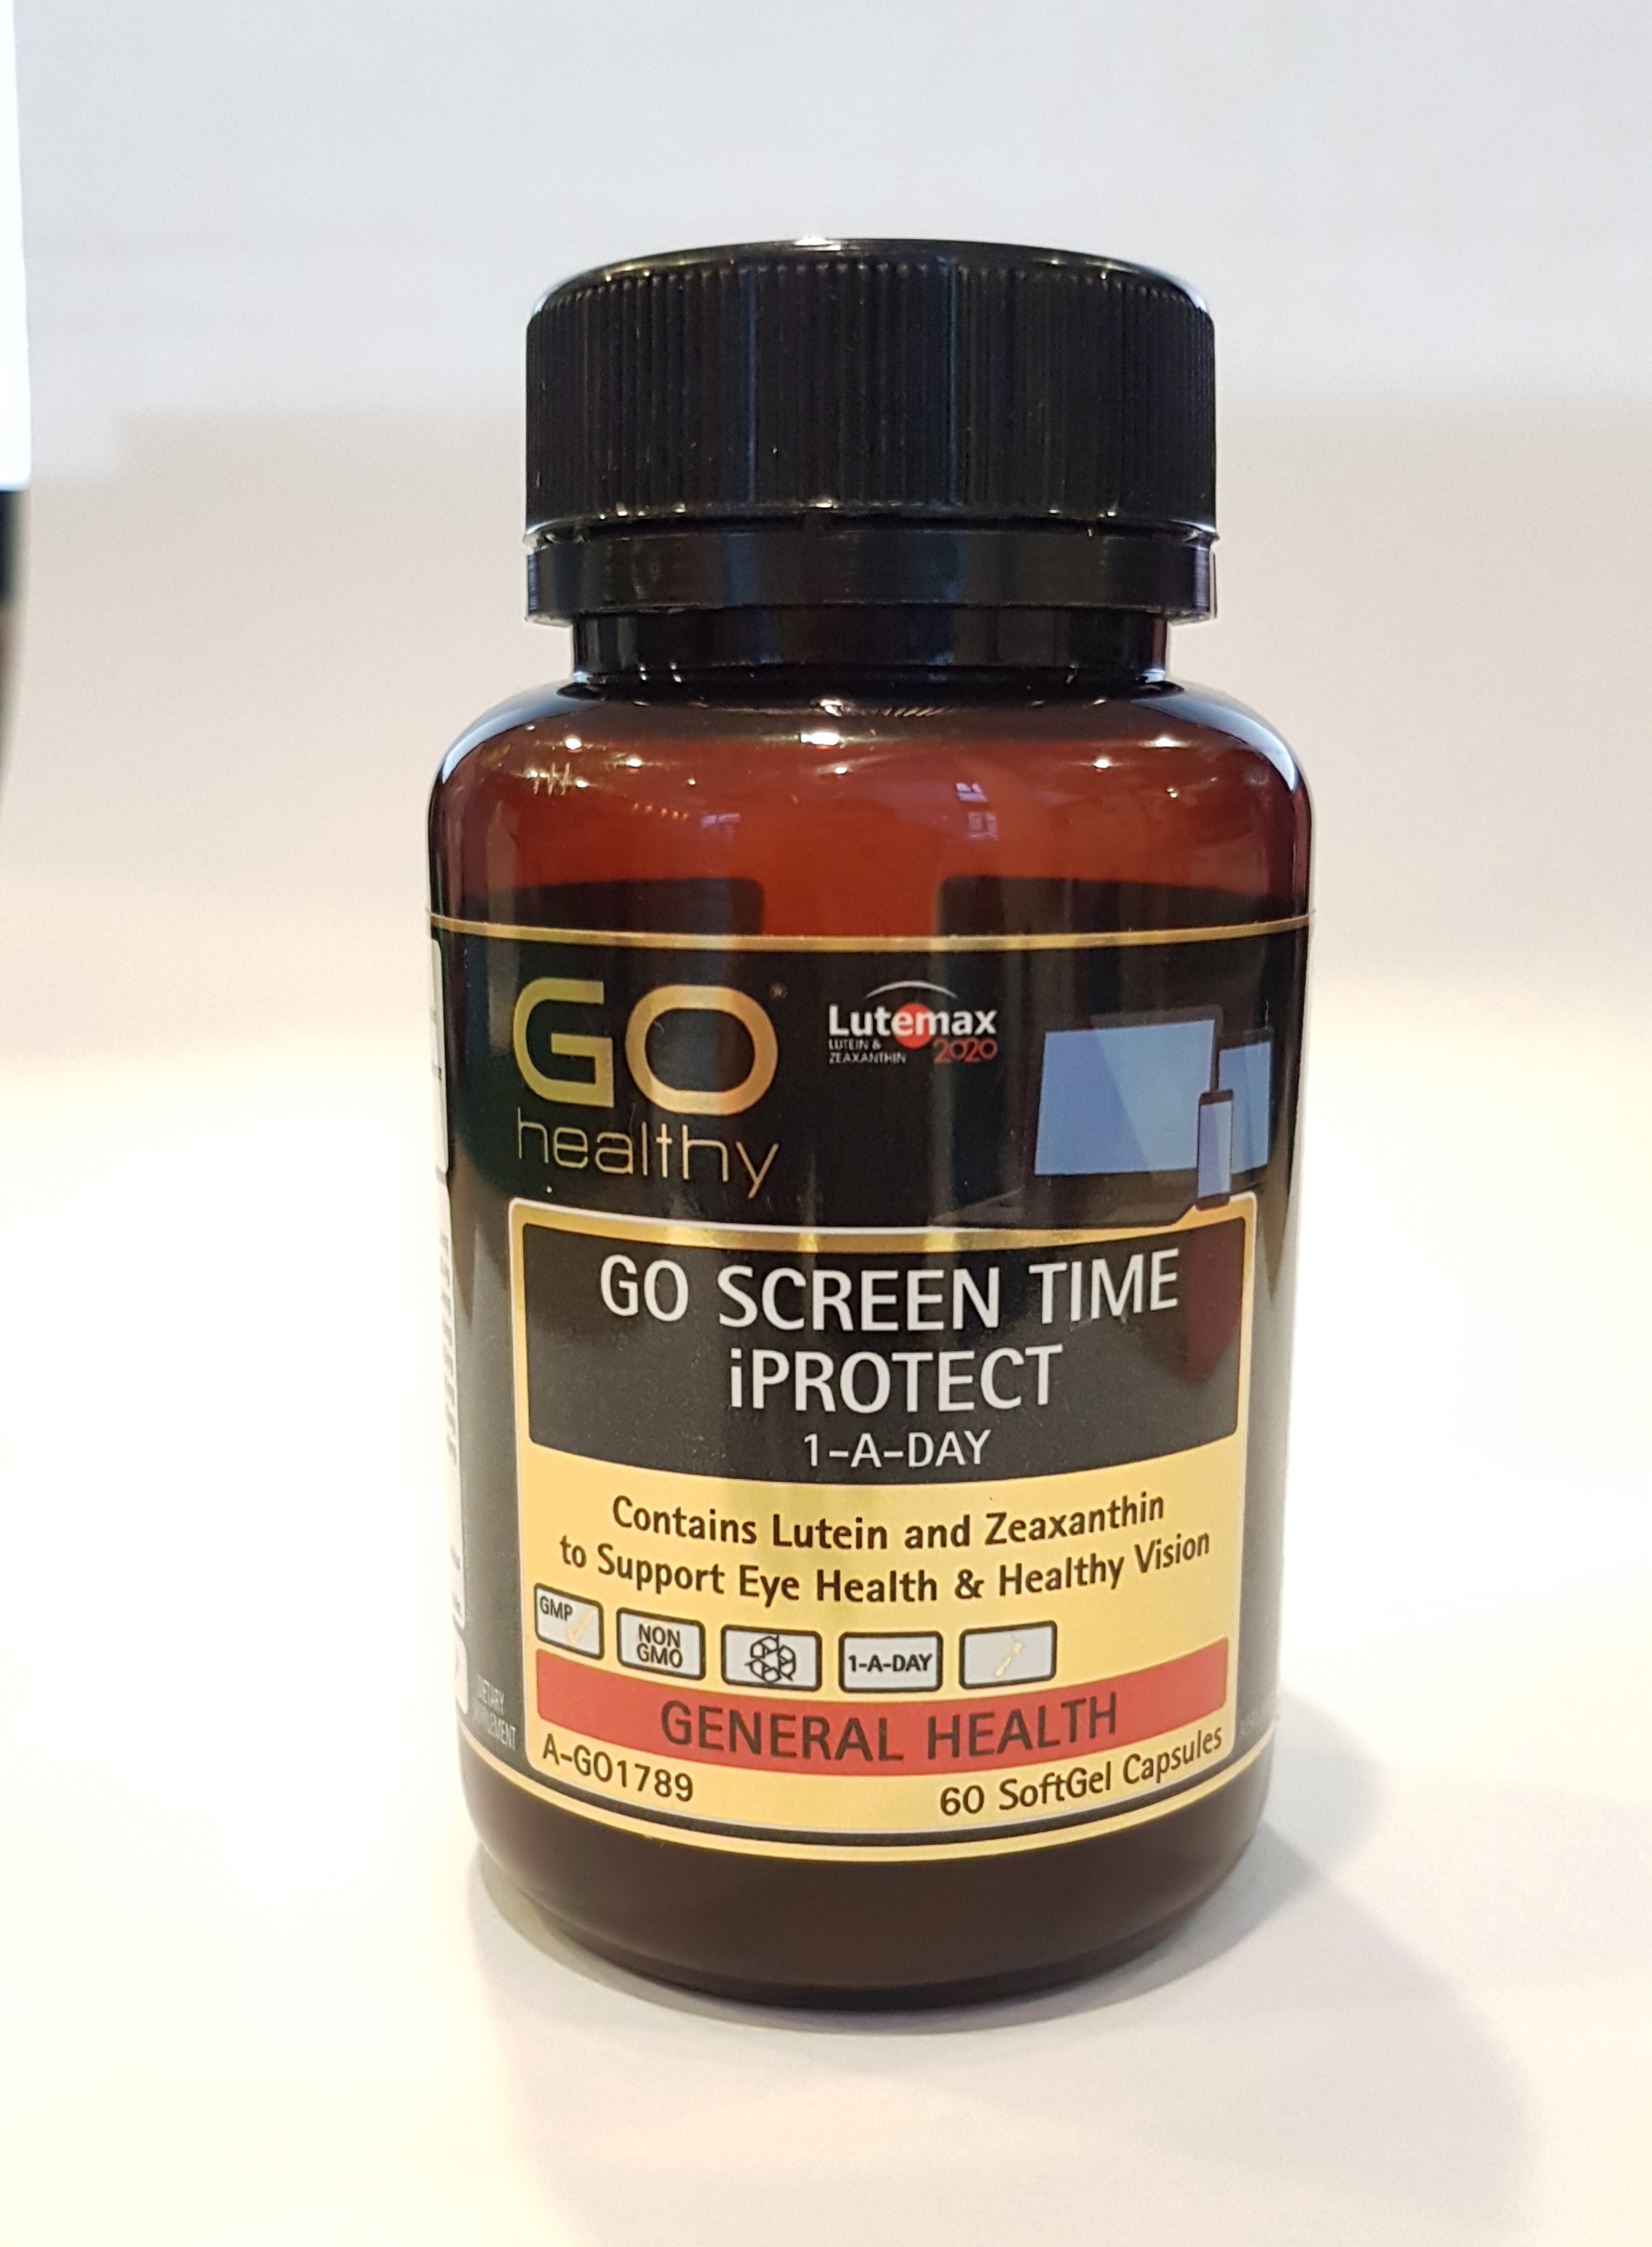 [MPLUS] GO HEALTHY Screen Time Iprotect 60s